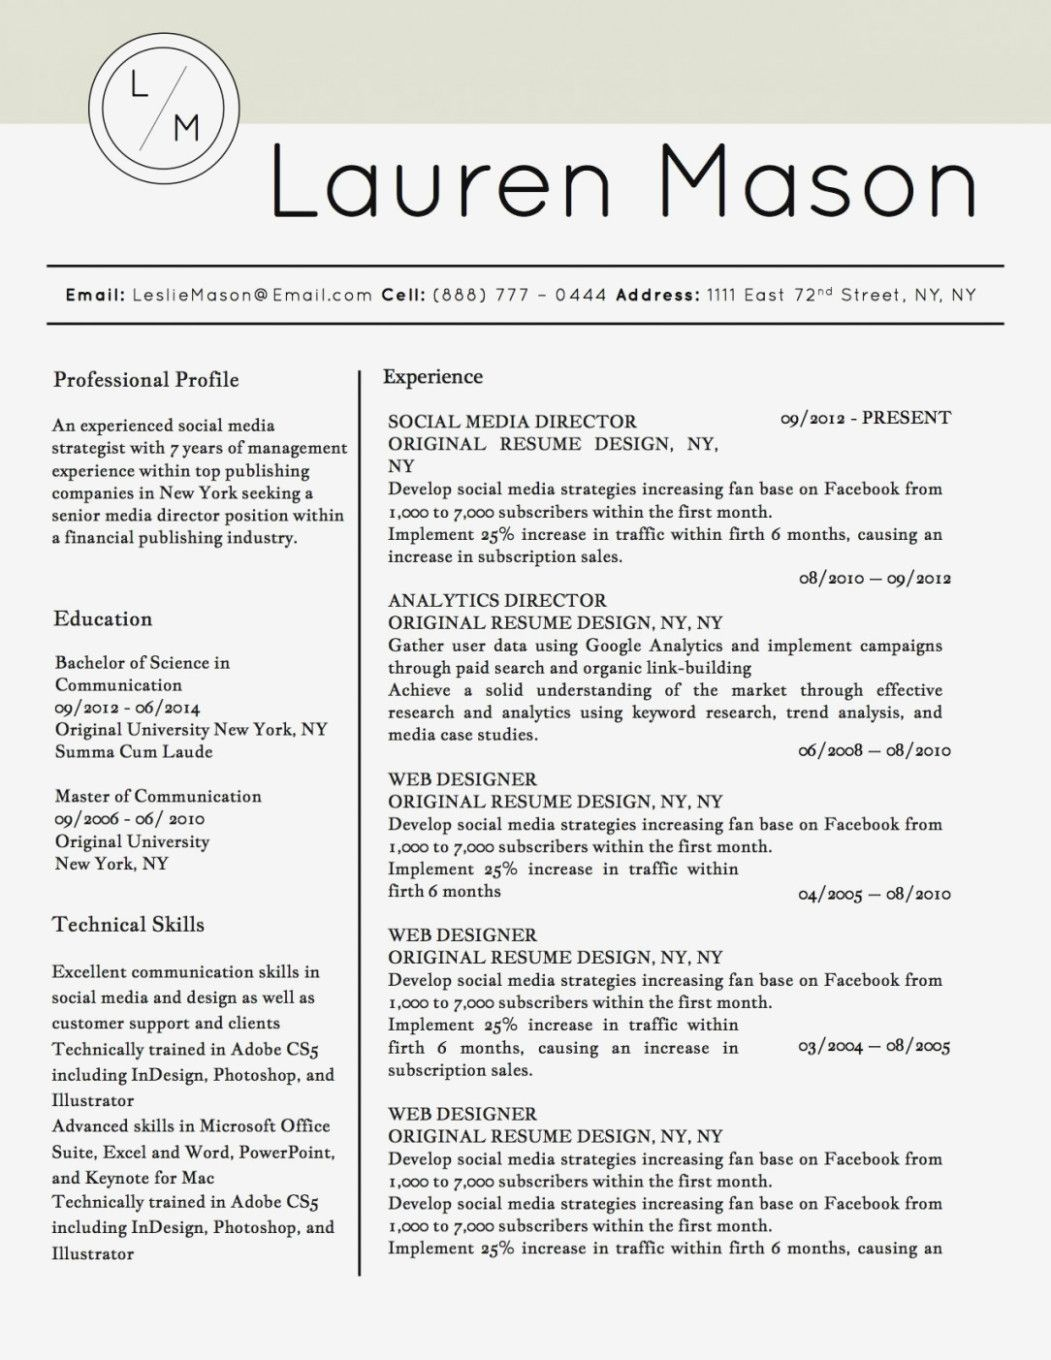 resume examples that stand out templates template word job microsoft layouts basic Resume Resume Layouts That Stand Out